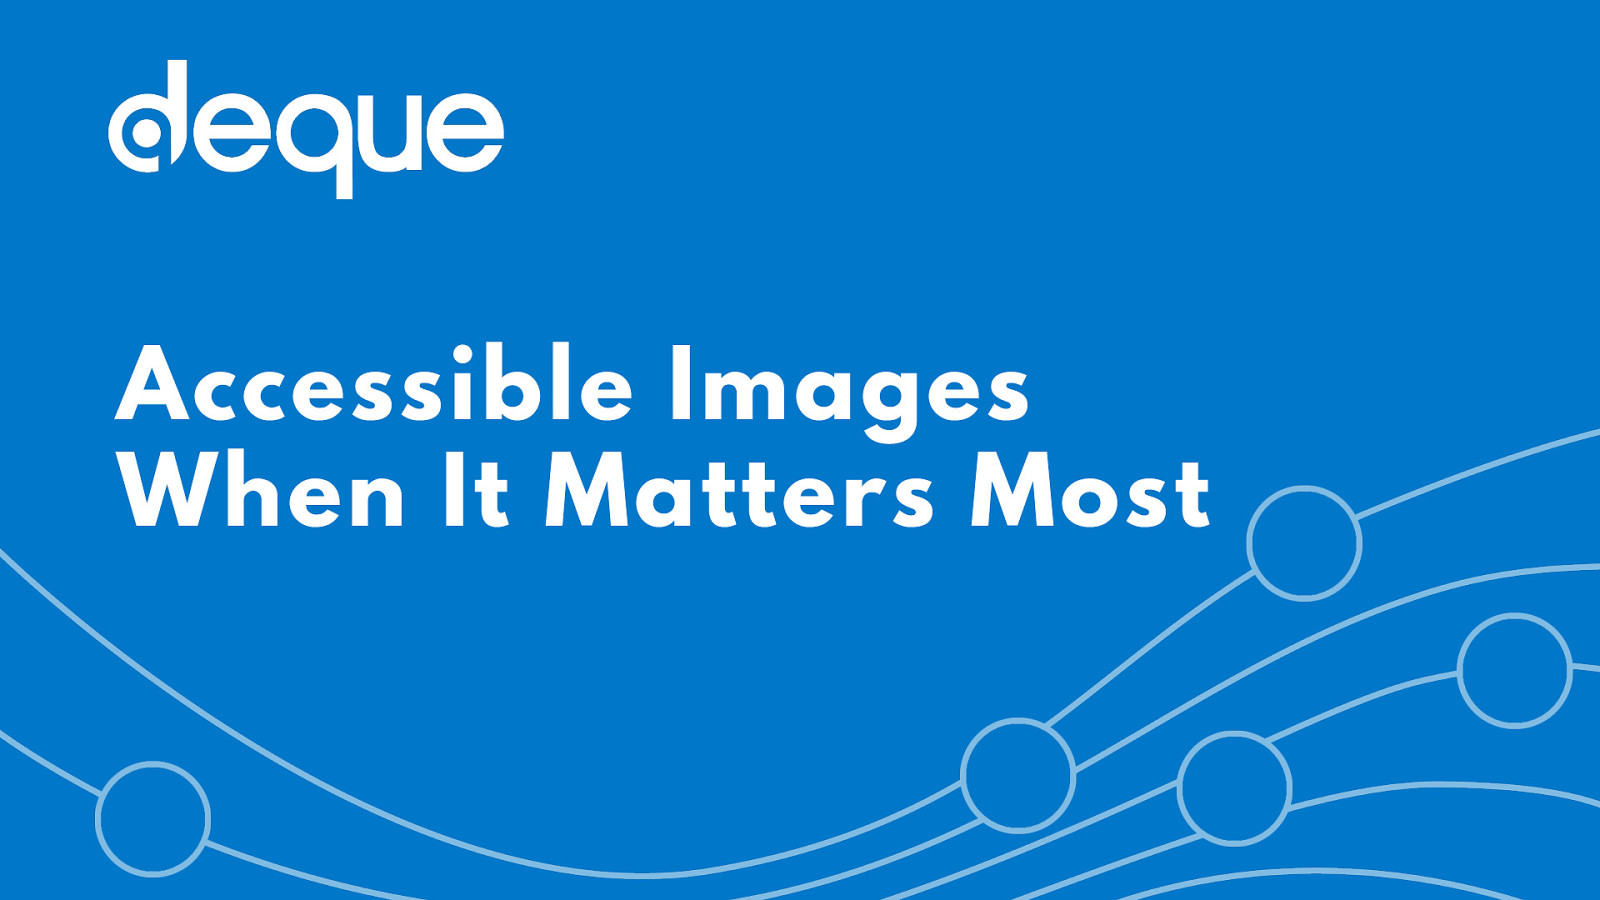 Accessible Images When It Matters Most